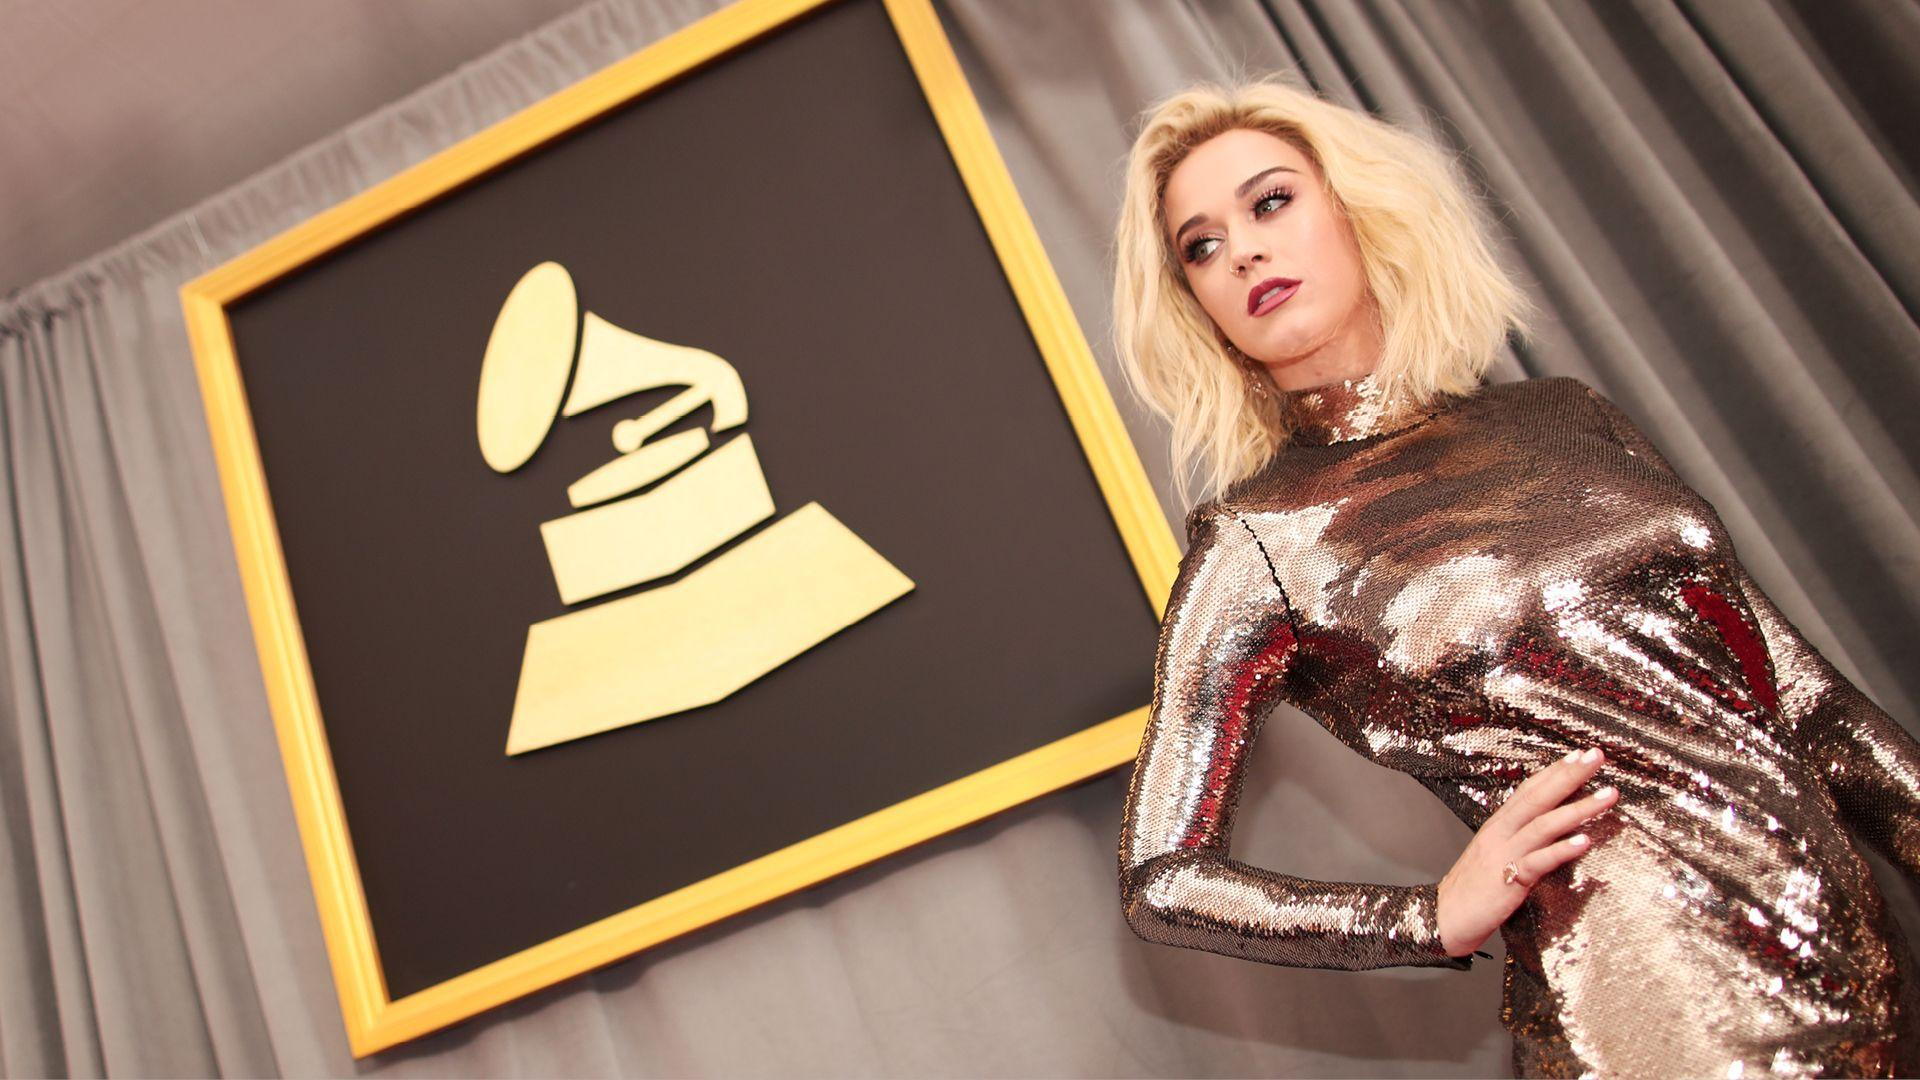 Katy Perry At The Grammy's